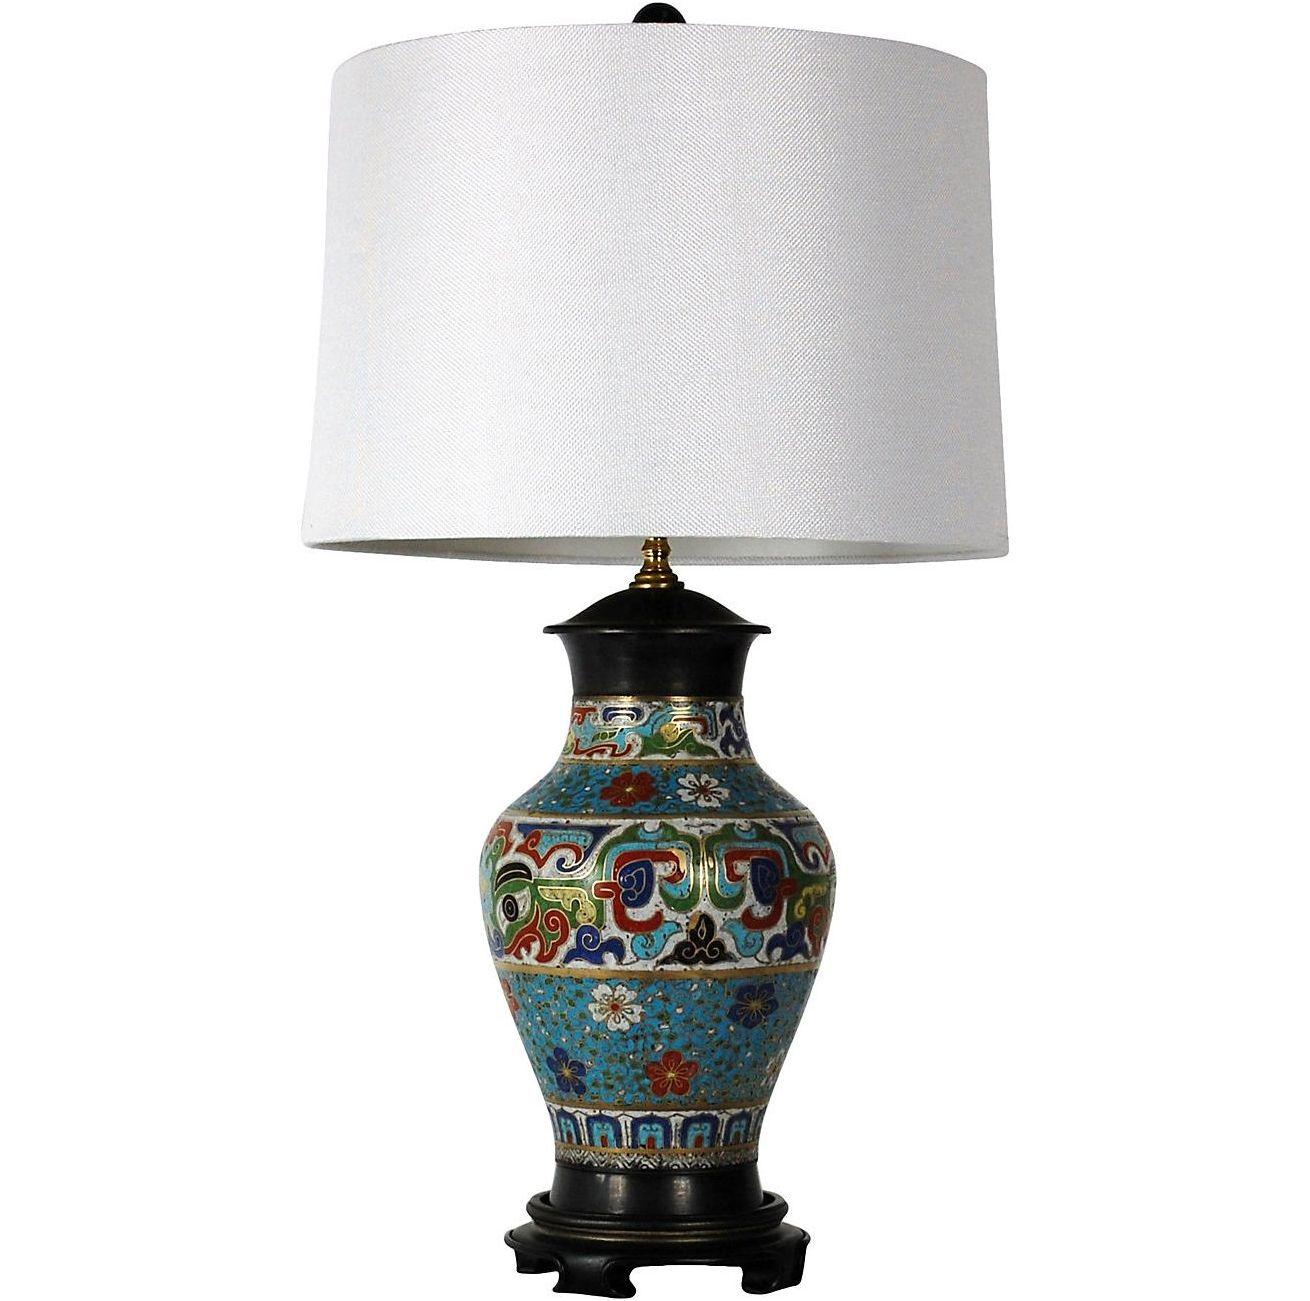 Antique Asian Champleve Urn Style Lamp Chairish